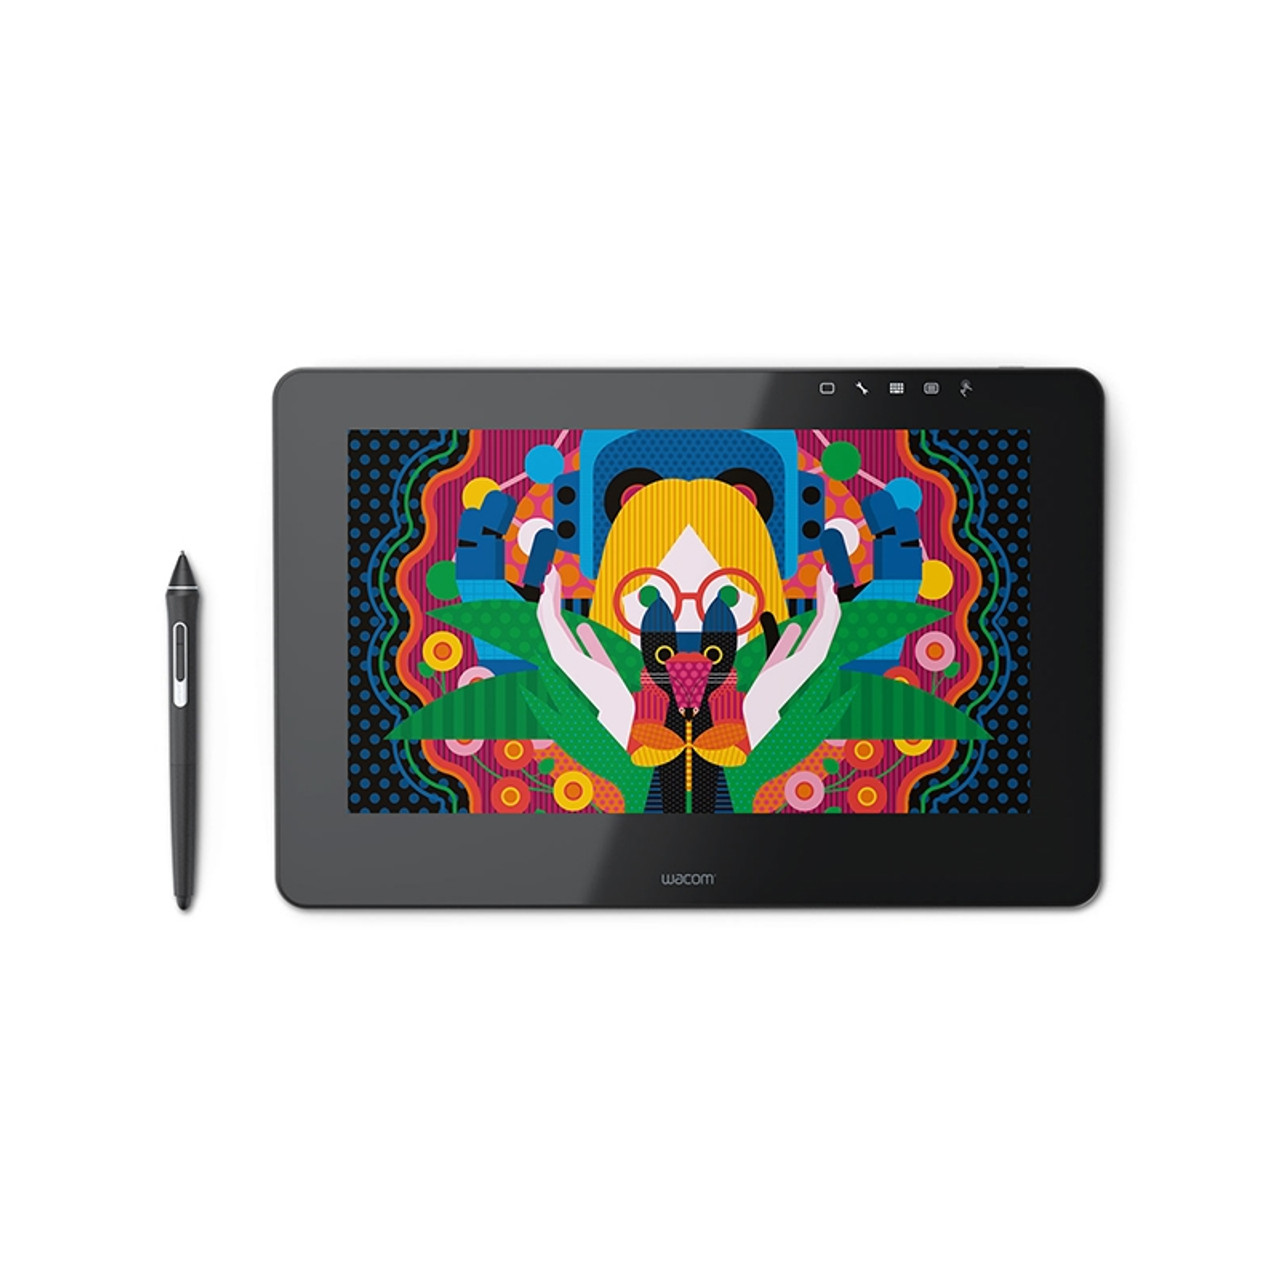 Image for Wacom Cintiq Pro 13in FHD Interactive Pen Display (DTH-1320) CX Computer Superstore